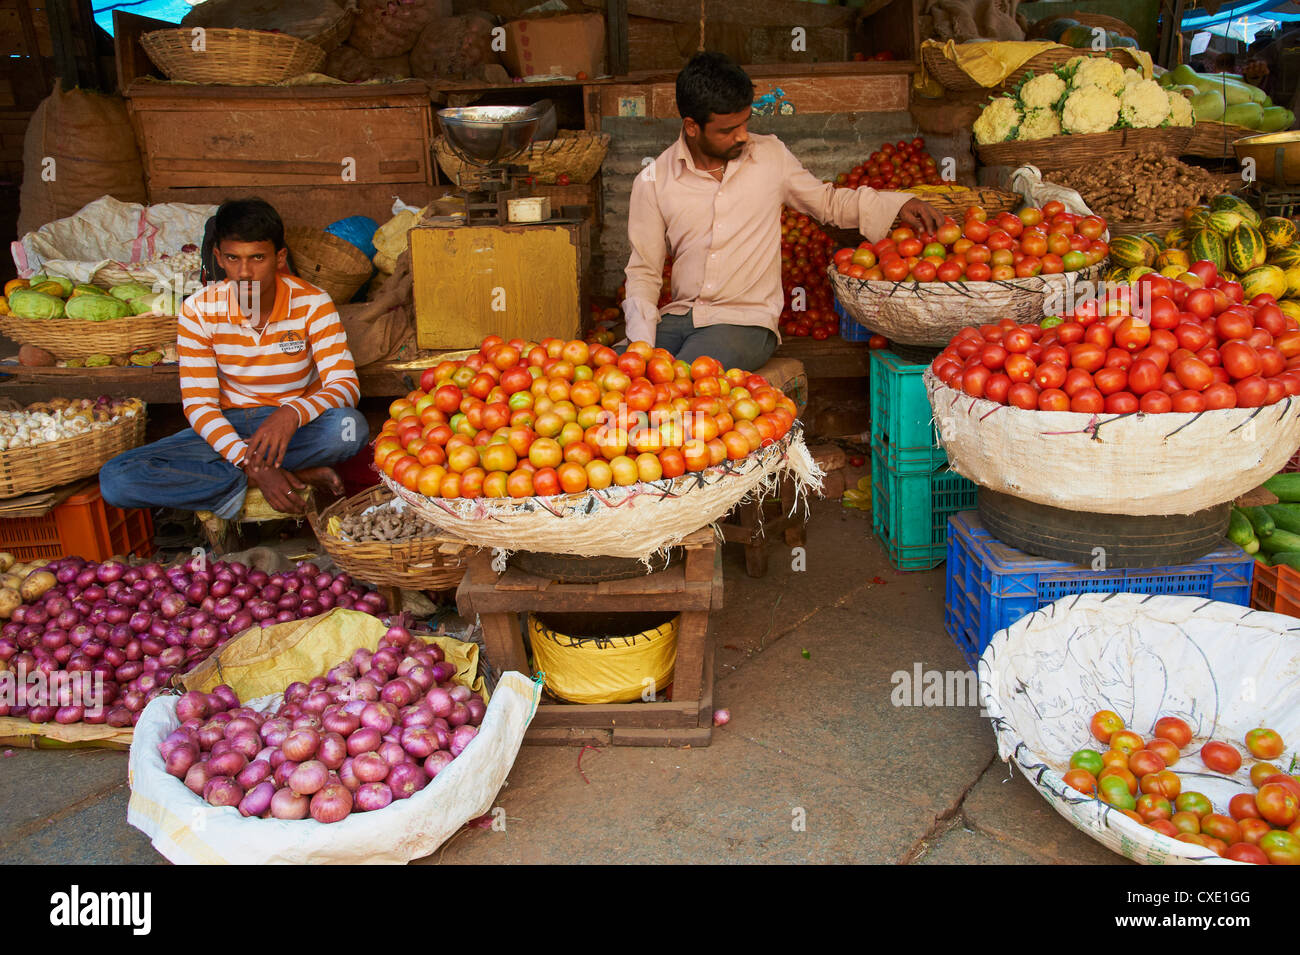 Vegetables for sale, Devaraja market, Mysore, Karnataka, India, Asia - Stock Image